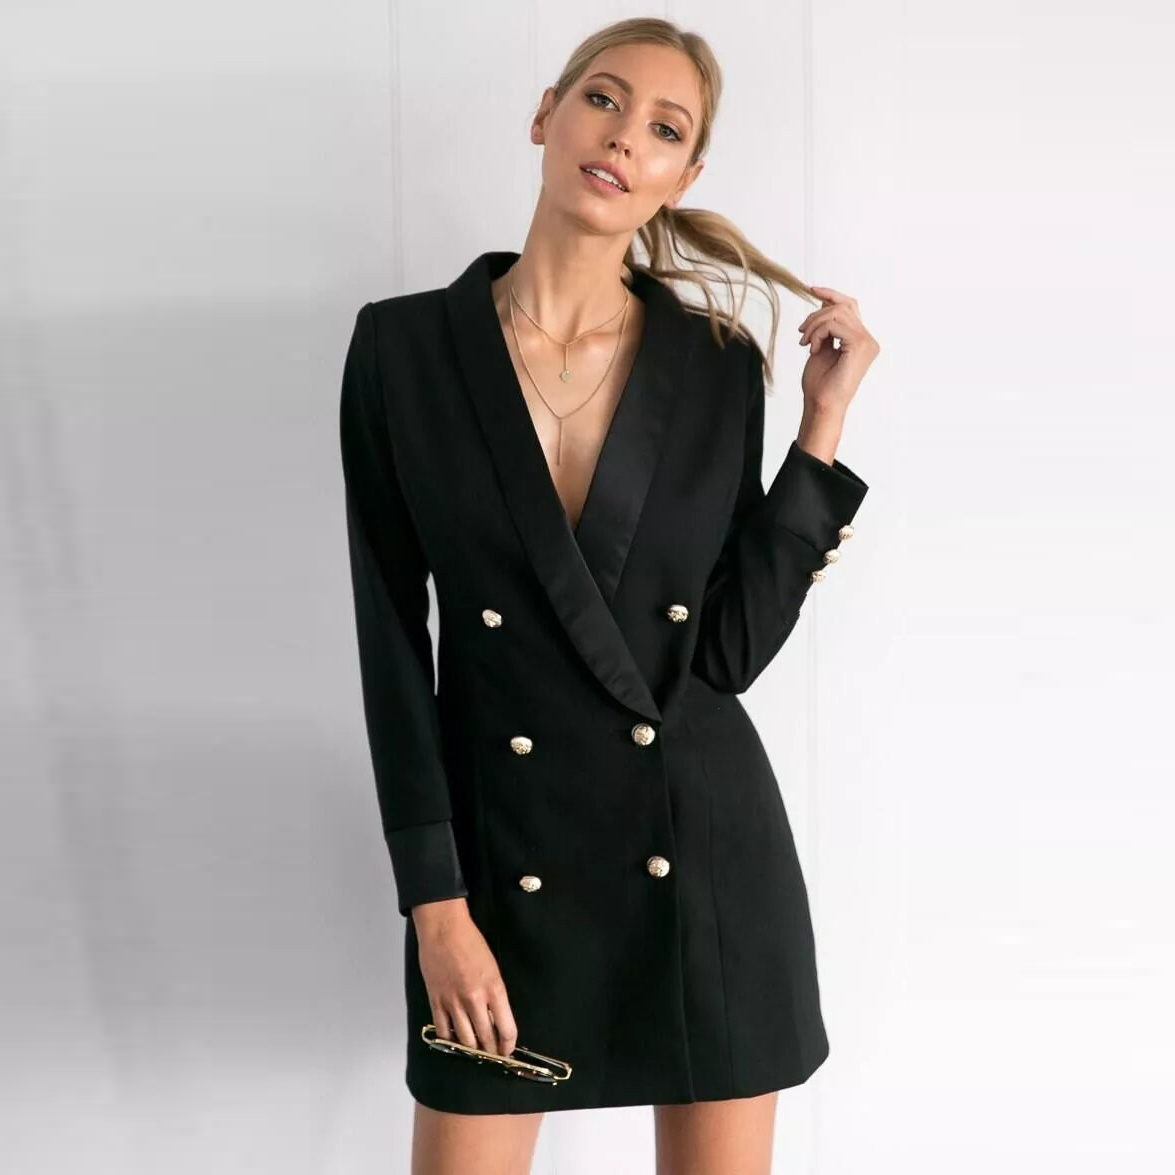 Black Double Breasted Suit Coat Women Autumn Winter 2020 Casual Slim Office Long Jacket Female Vintage blazer Overisized Clothes